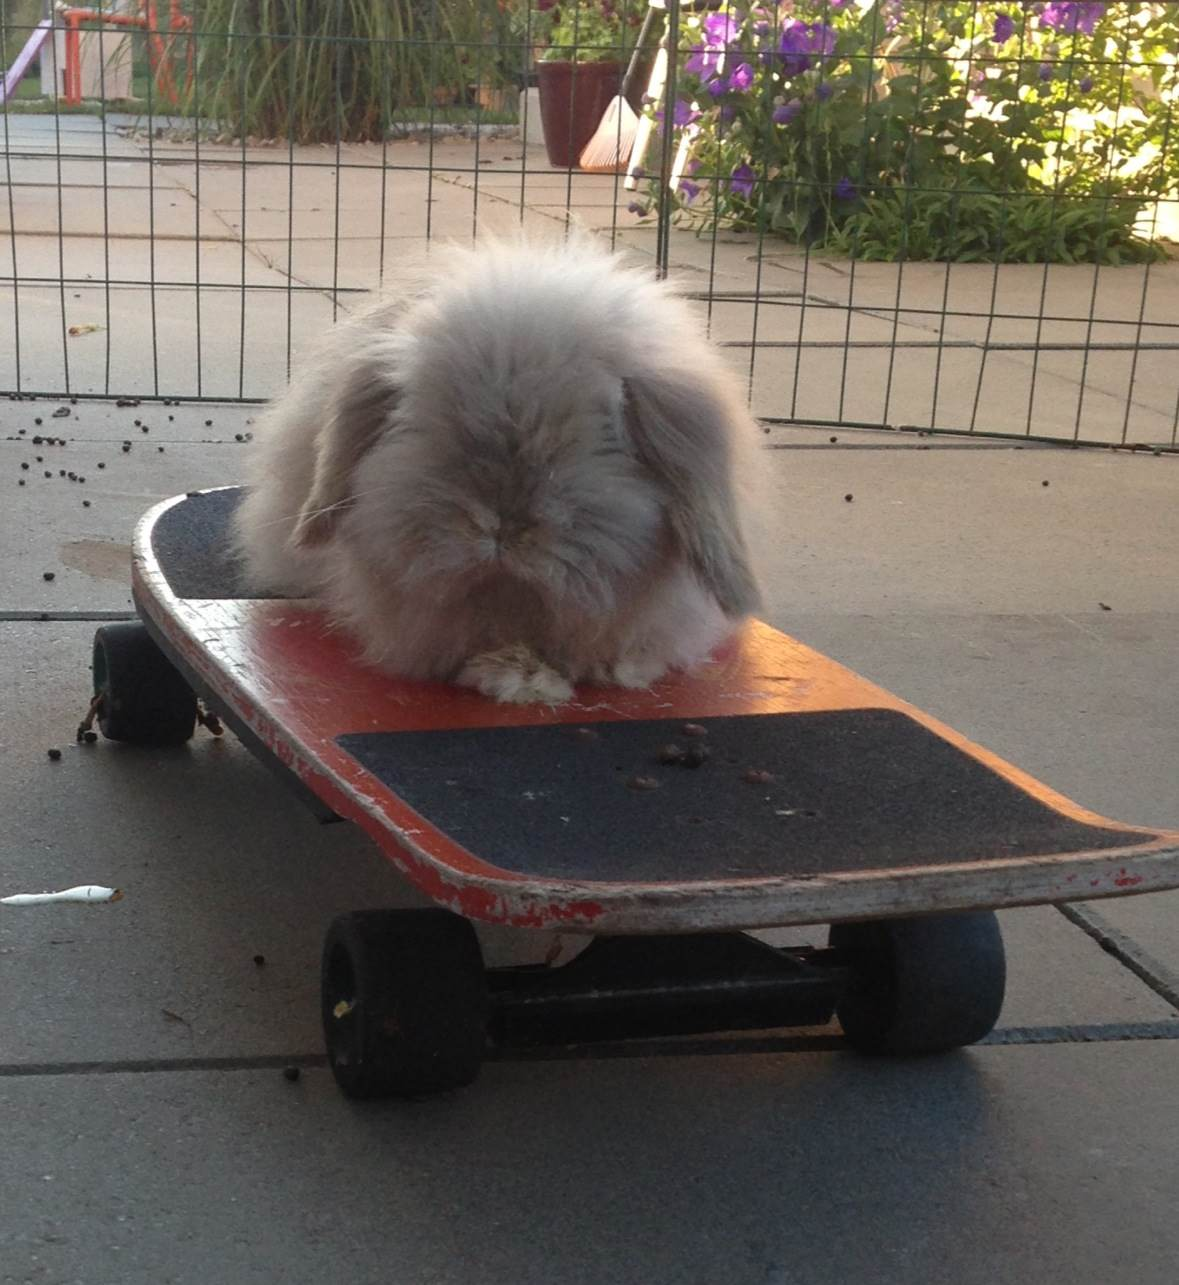 Could Bunny Be the Next Tony Hawk?